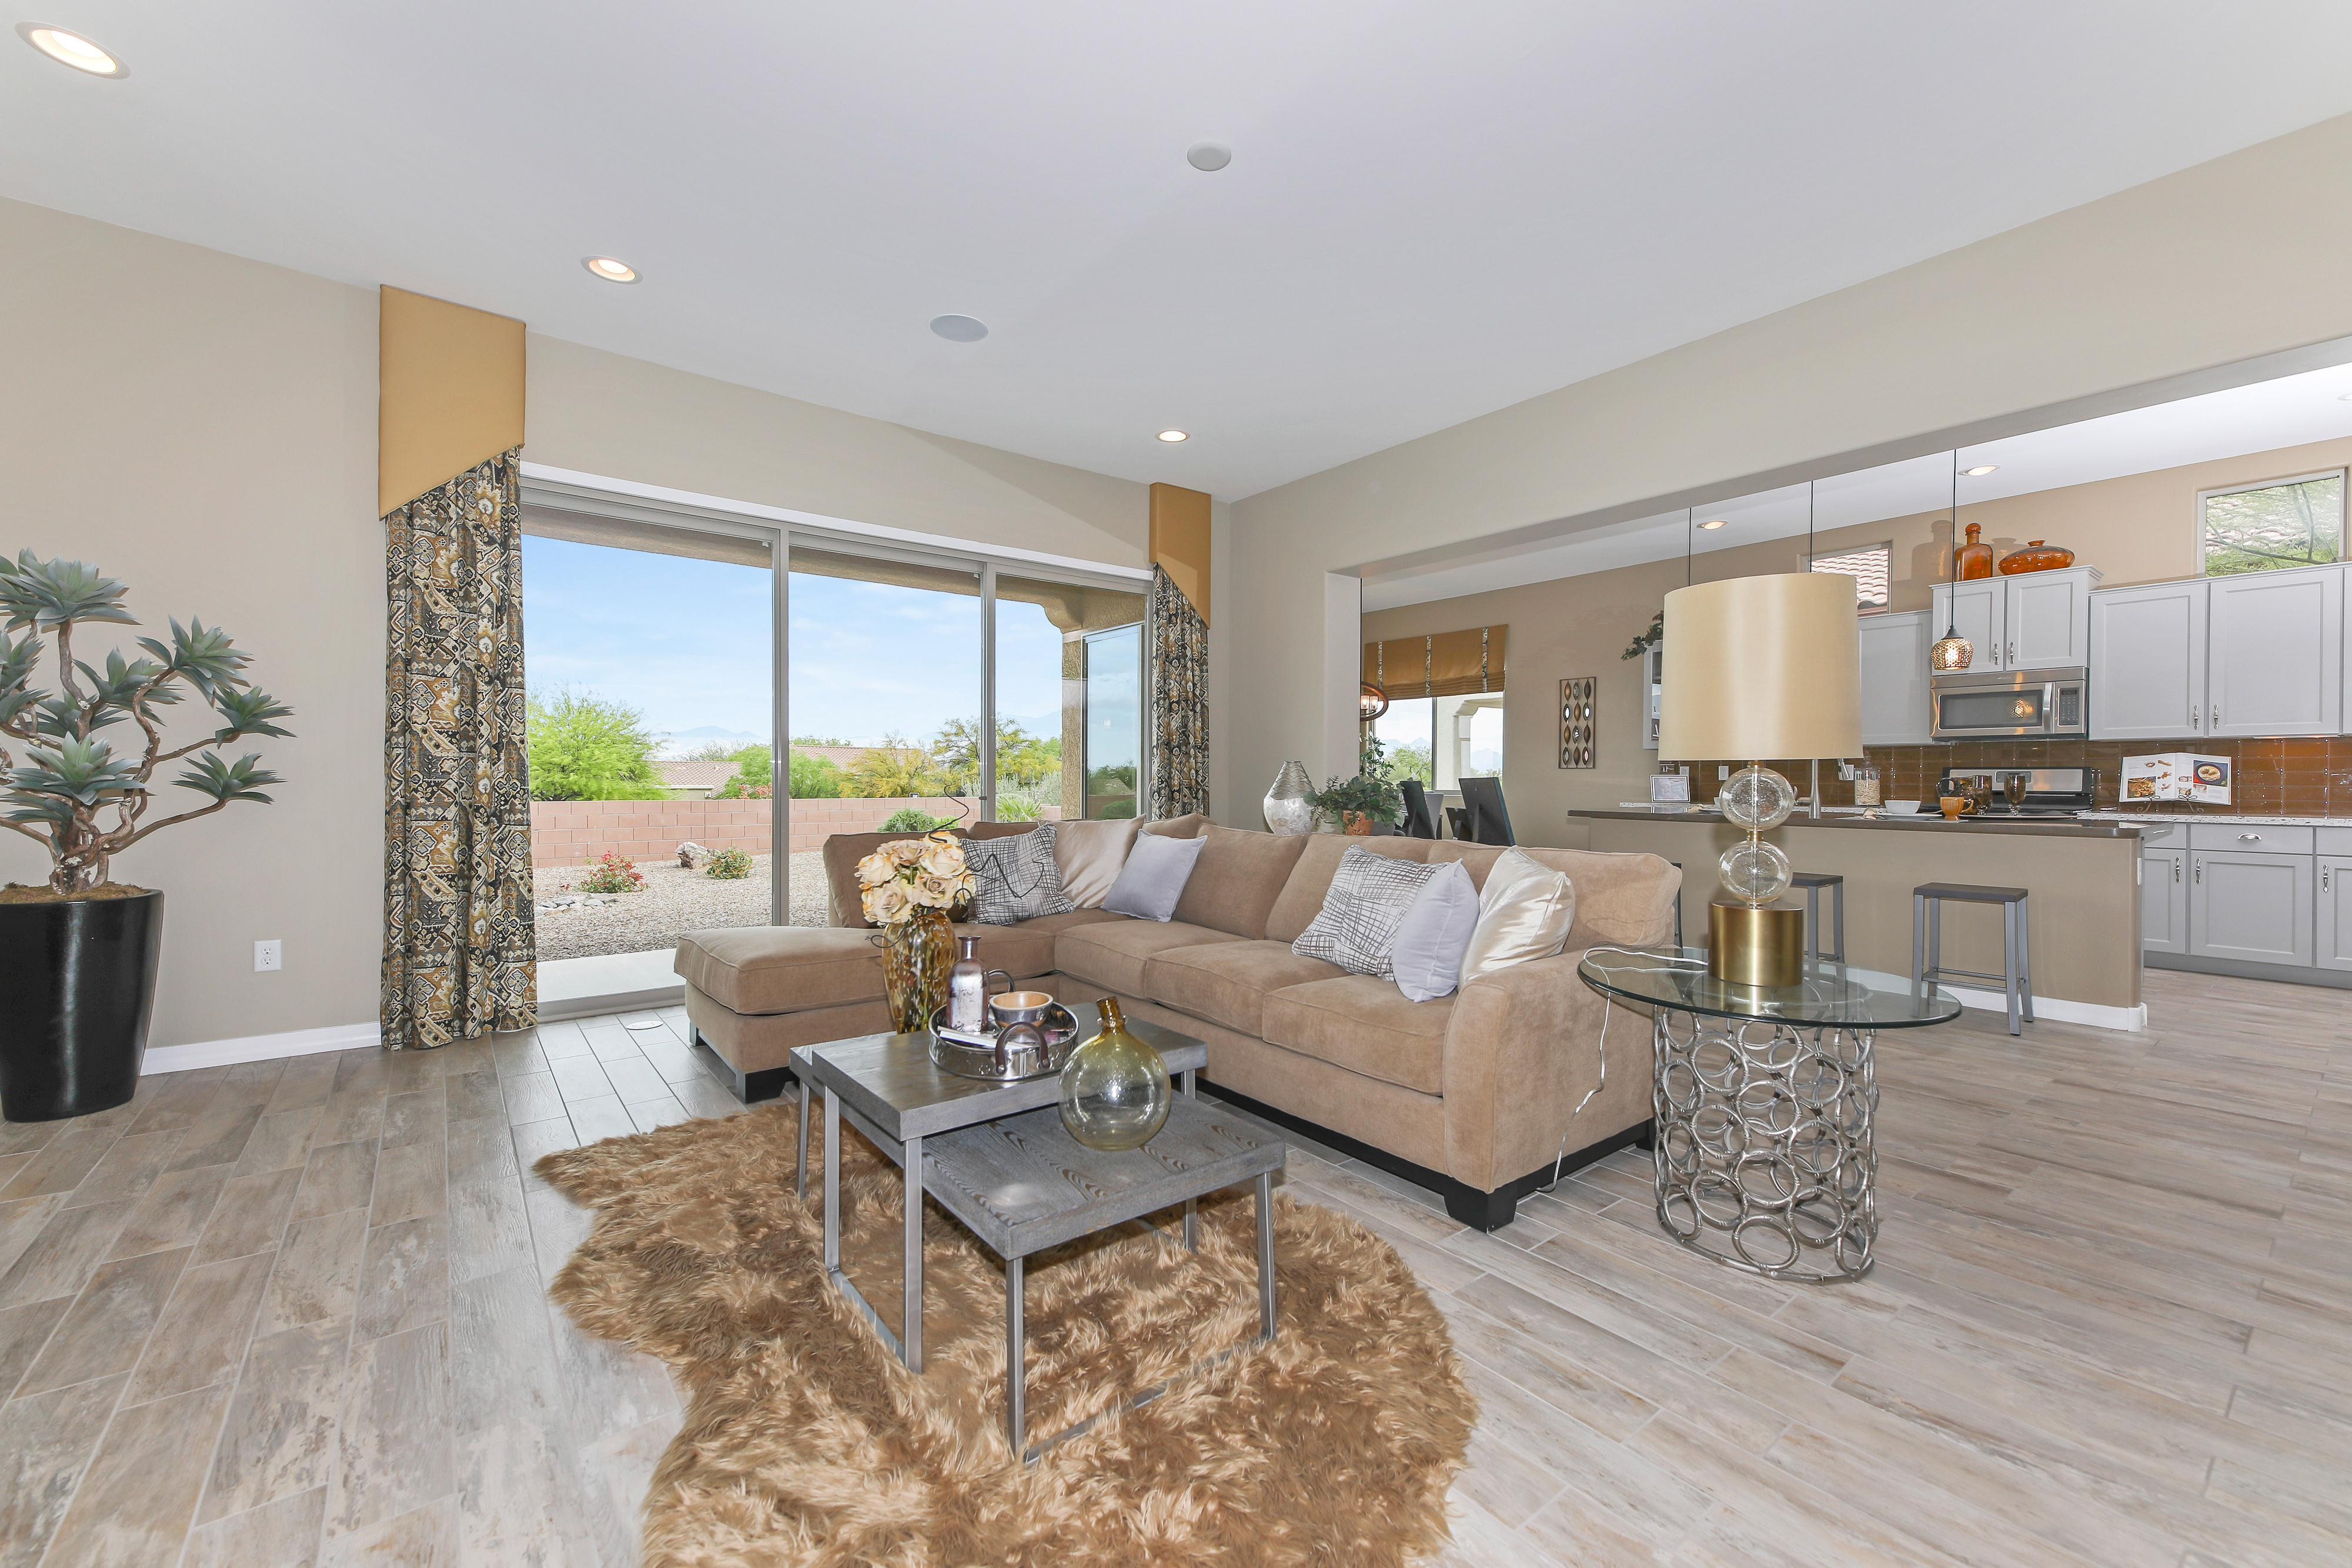 Living Area featured in the Cimarron By Fairfield Homes in Tucson, AZ